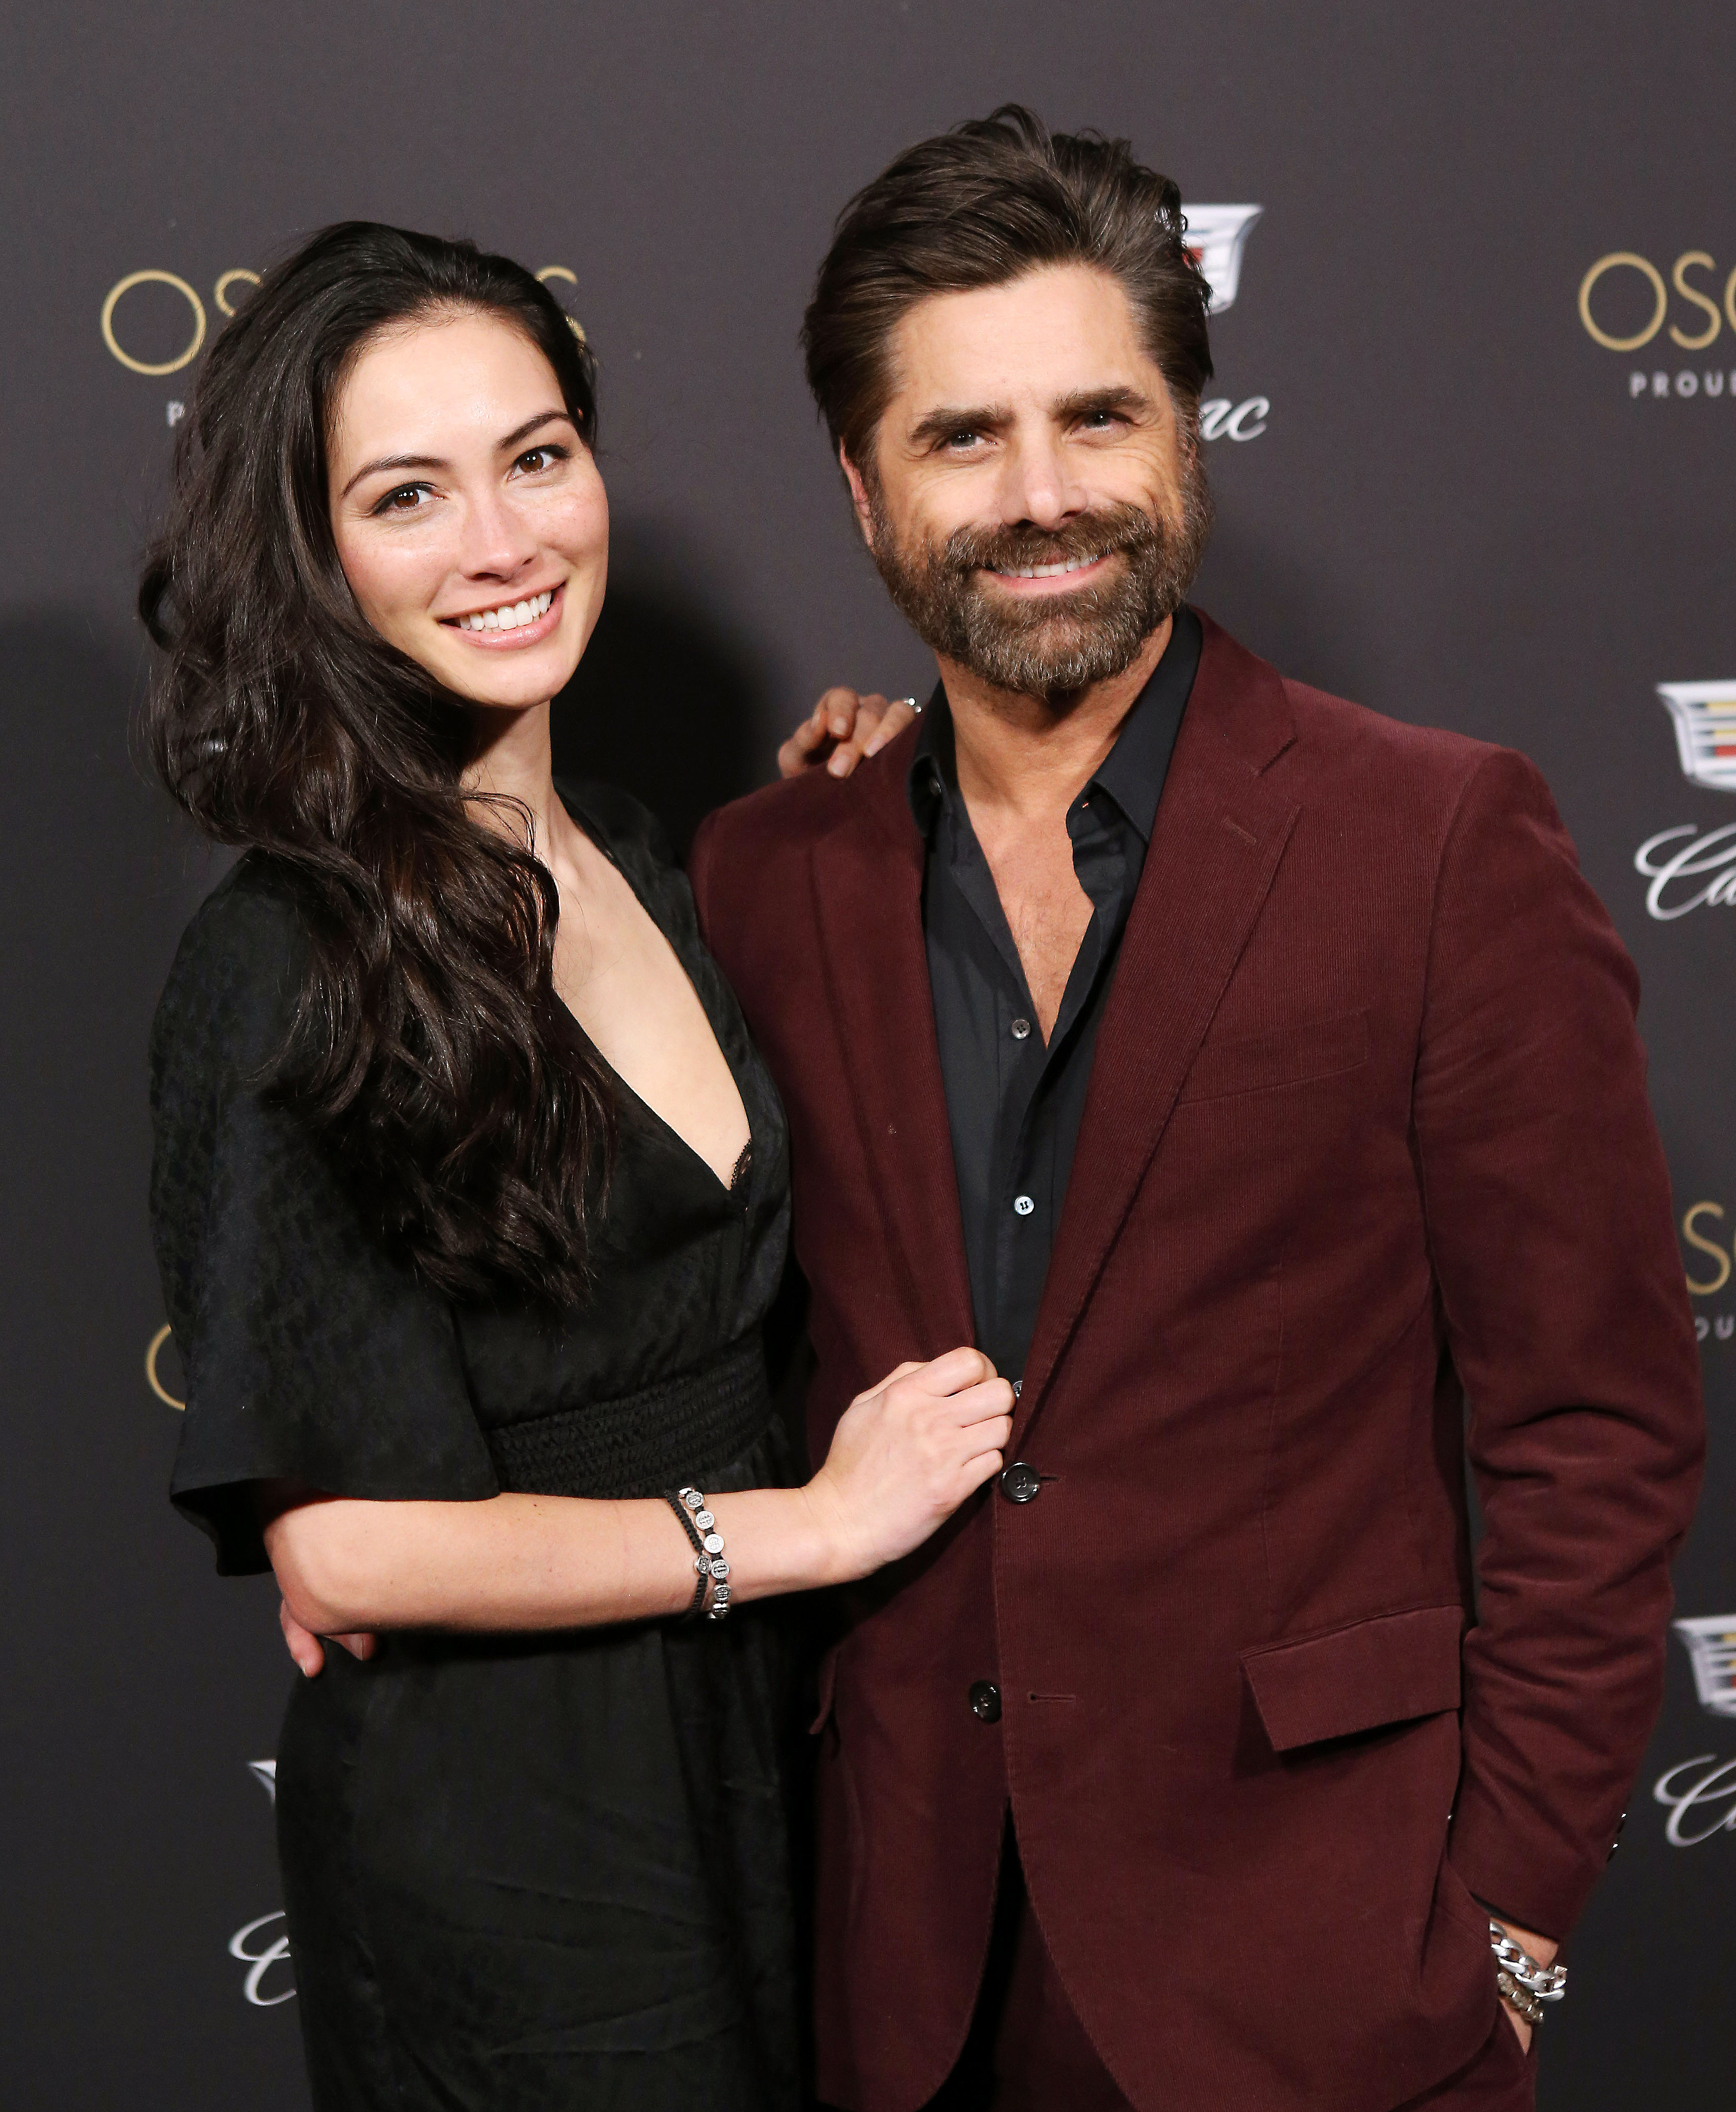 """John Stamos and Caitlyn McHugh Cadillac - The Full House alum, who celebrated the impending ceremony with wife Caitlin McHugh , has come a long way since his past Oscars traditions. """"We'd sit in front of the TV and eat Chinese food and watch the show,"""" Stamos, 55, told Us and other reporters at Cadillac's Fourth Annual Oscars Cocktail Party."""